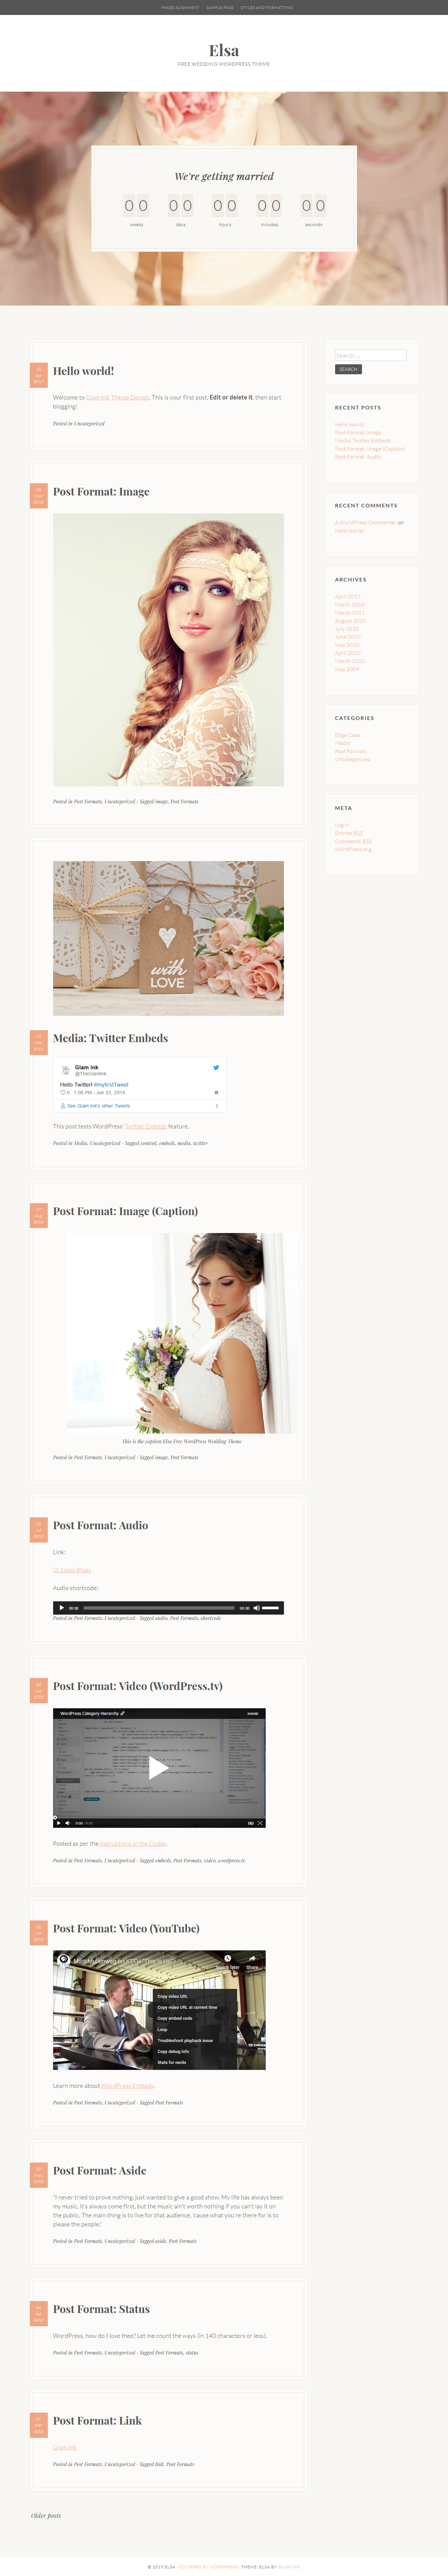 elsa best free feminine wordpress theme - 10+ Best Free Feminine WordPress Themes